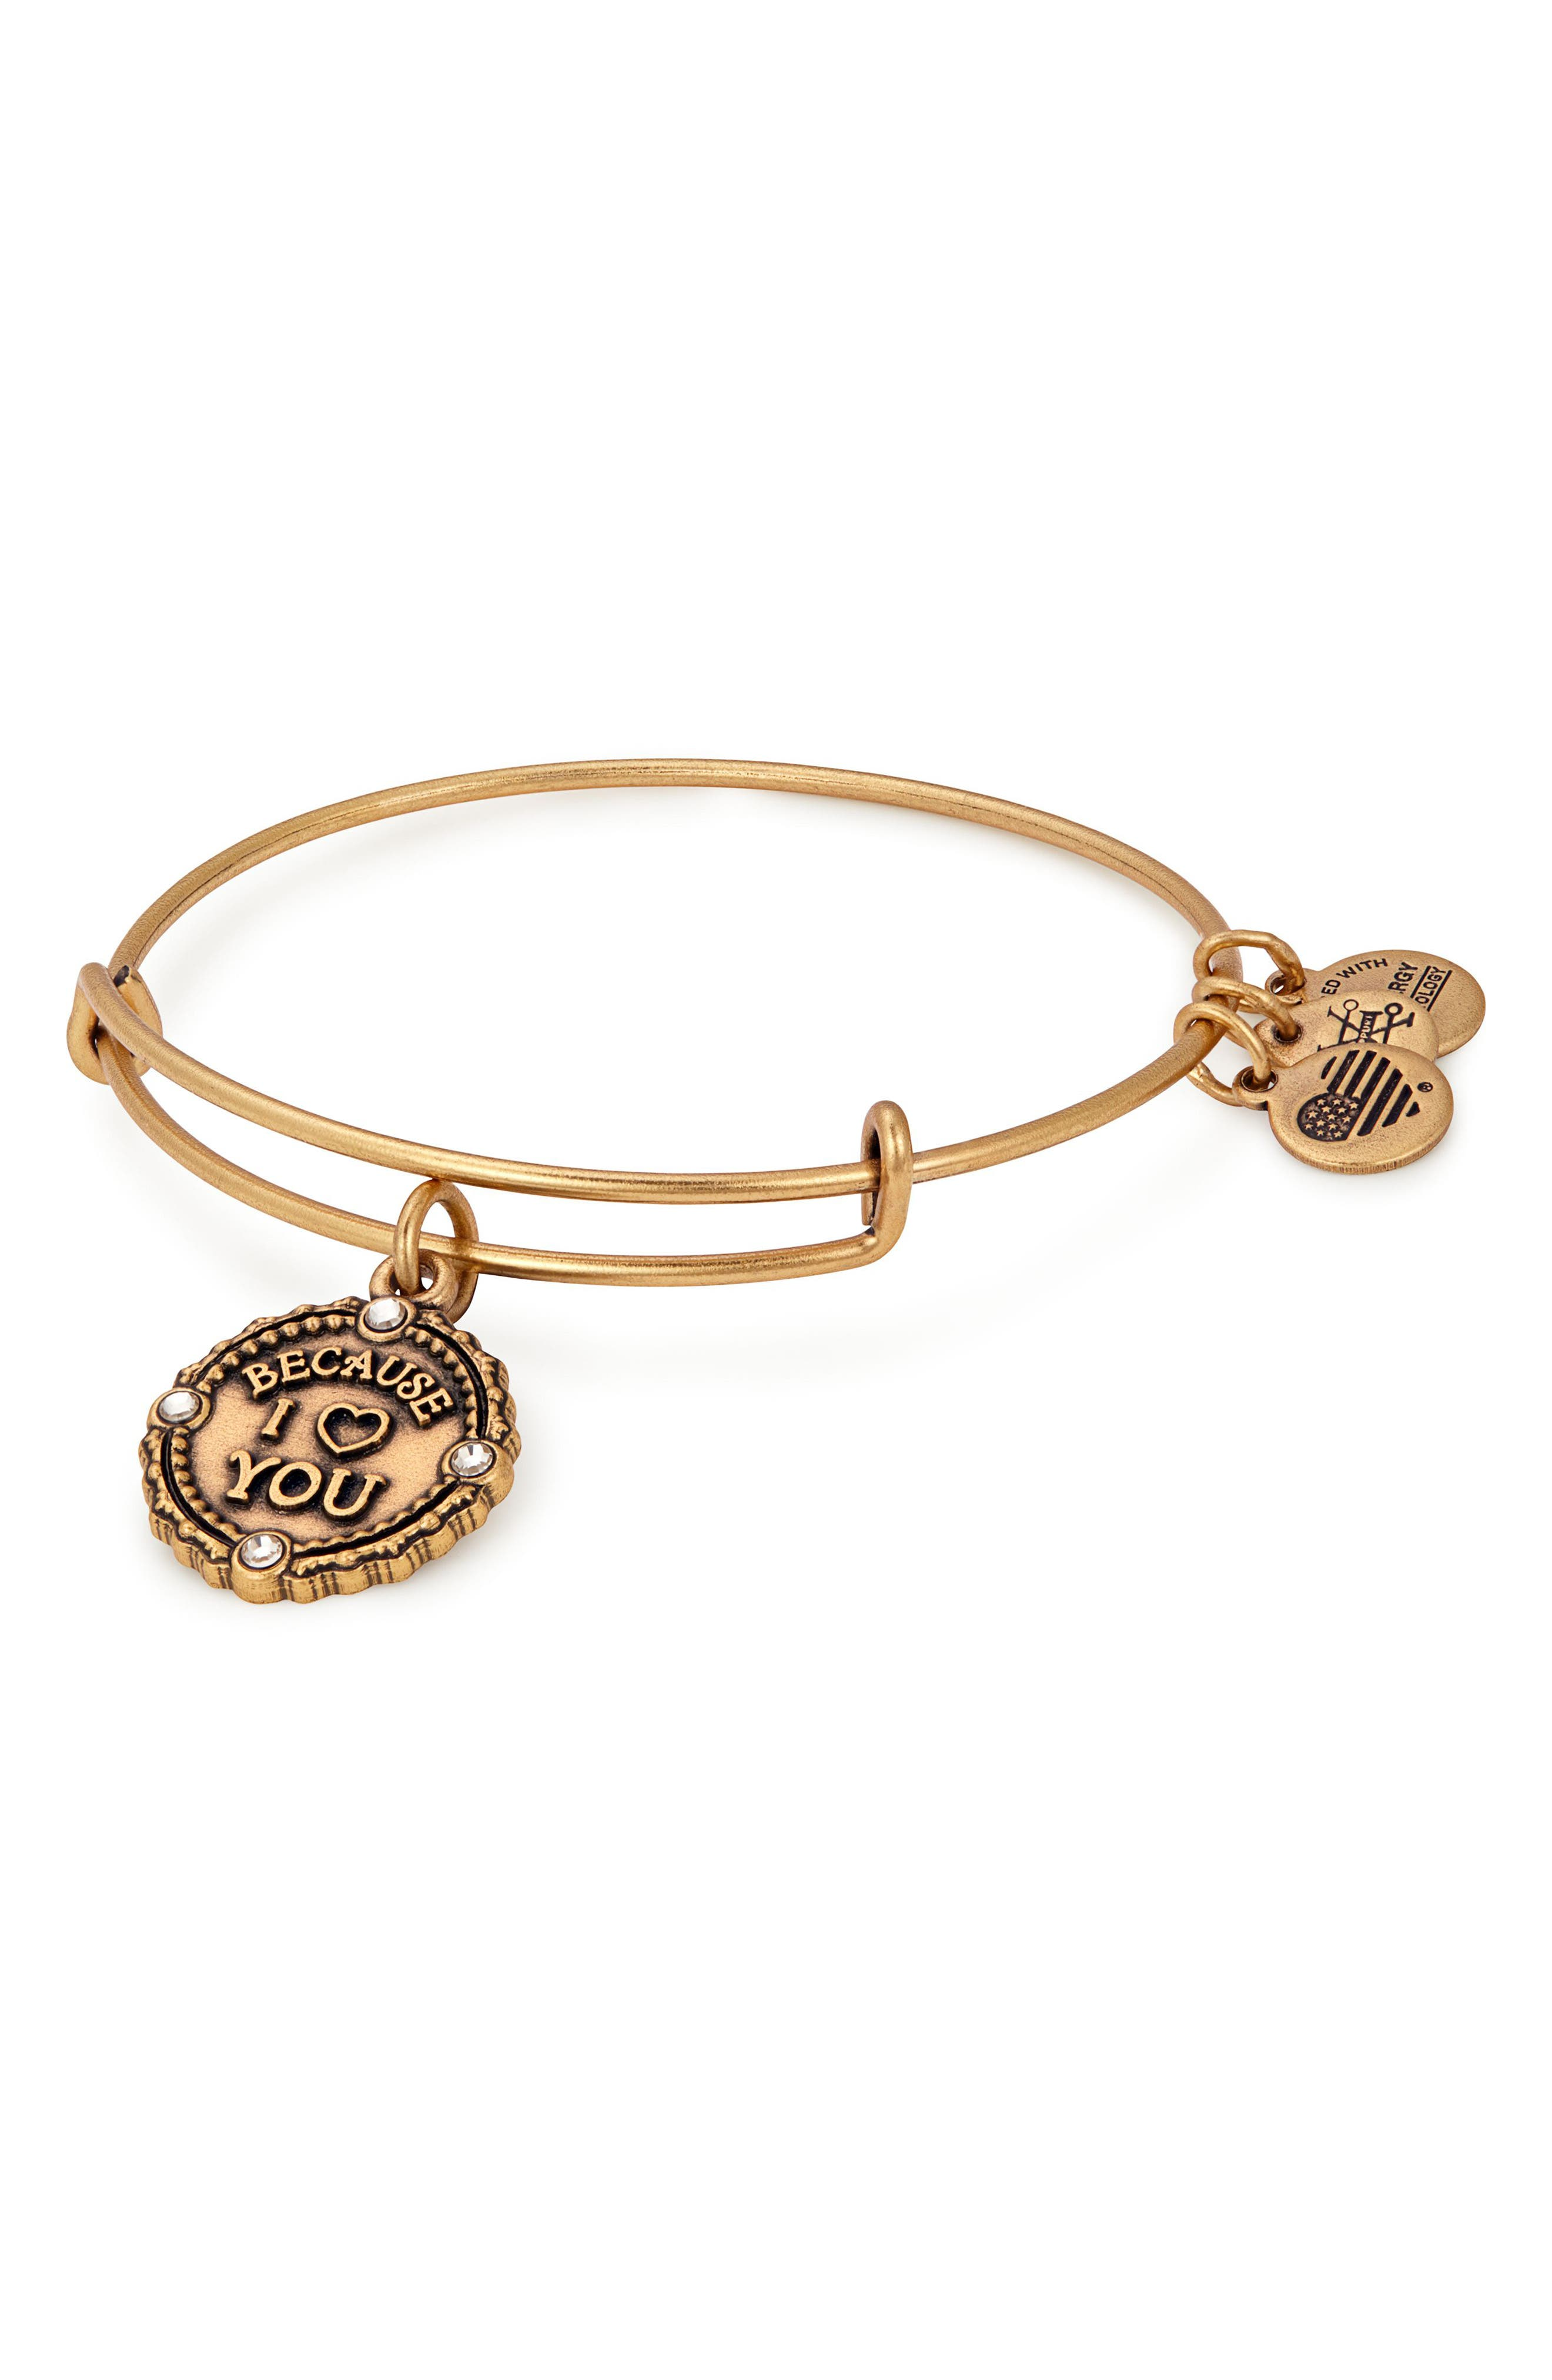 ALEX AND ANI Because I Love You Bracelet, Main, color, GOLD